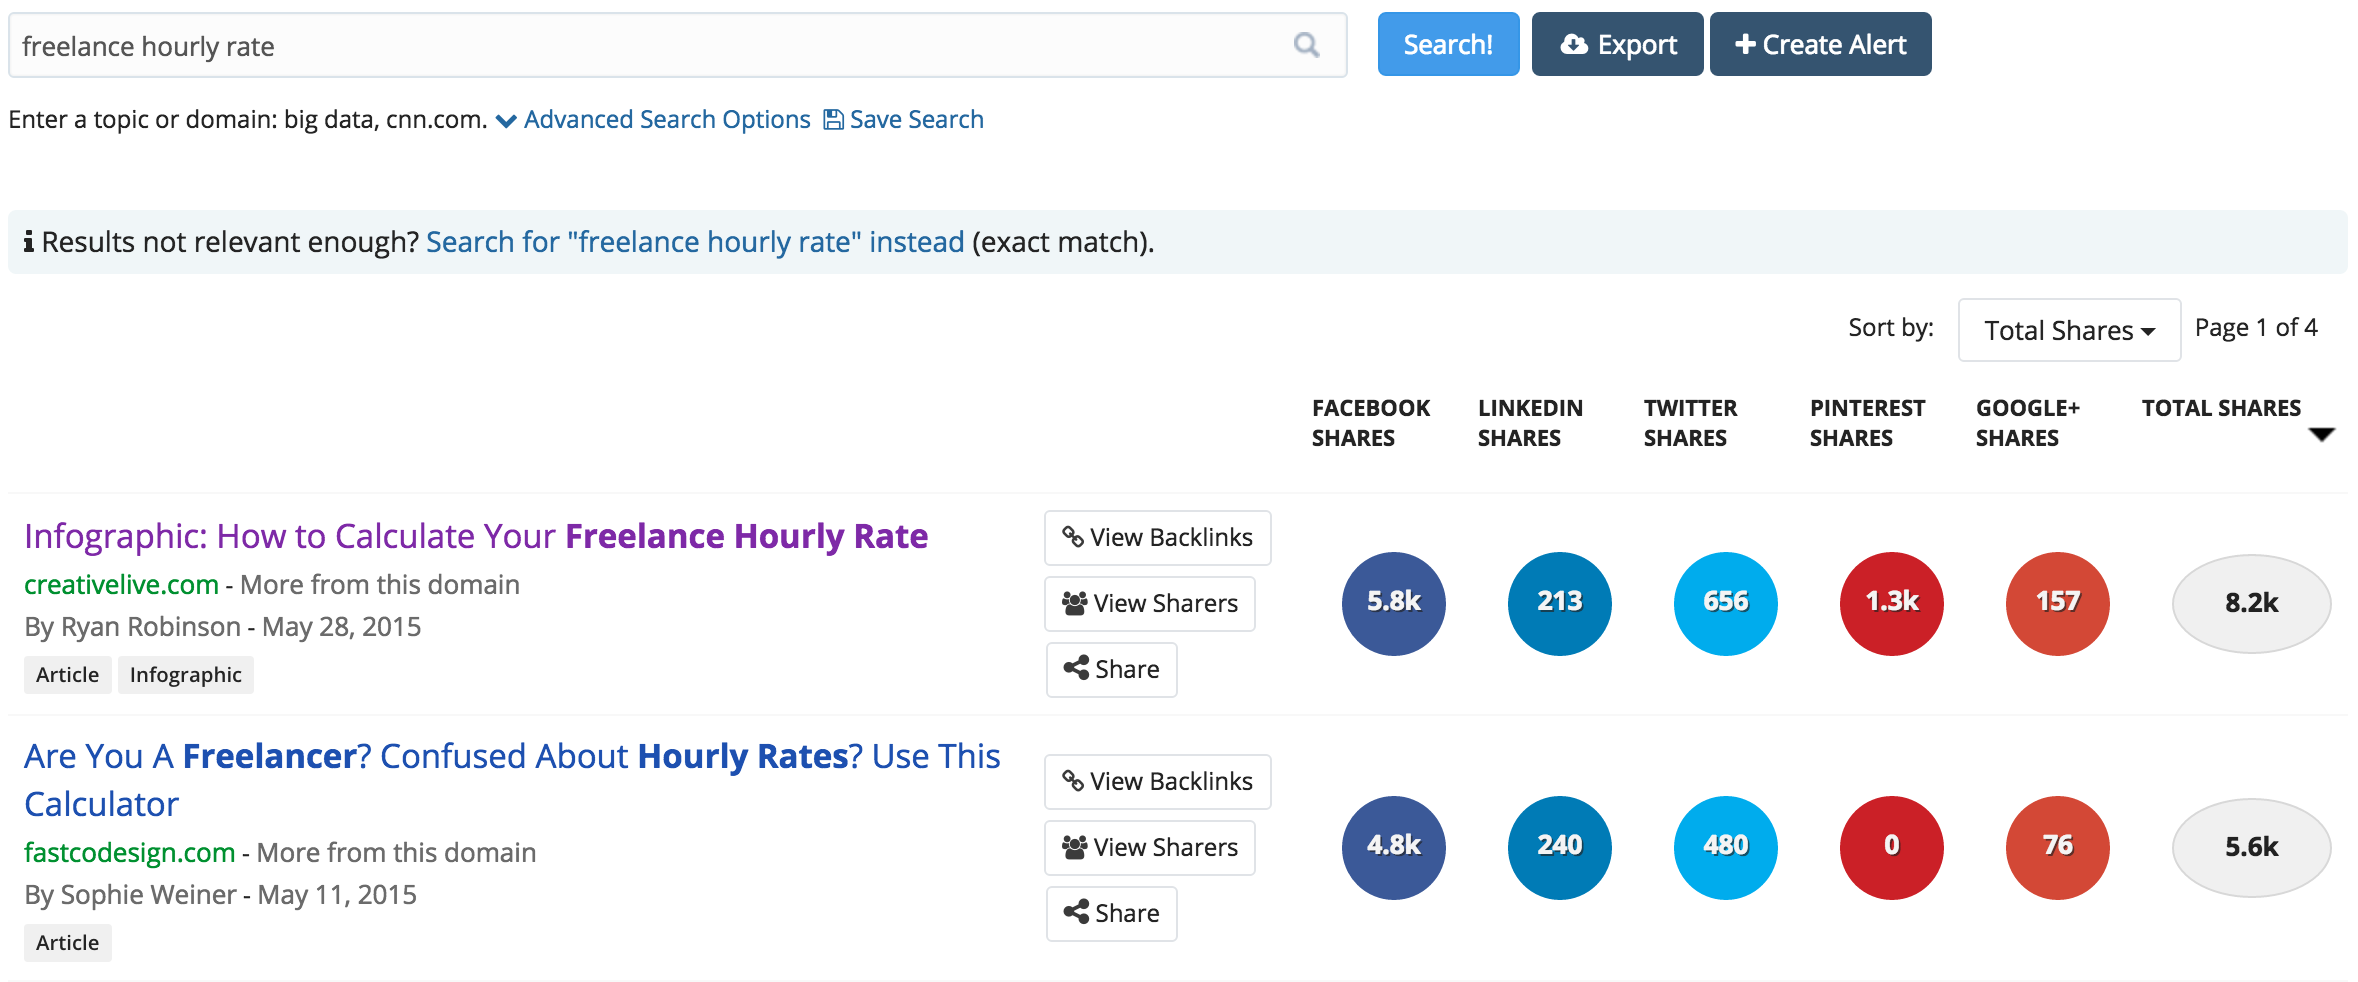 BuzzSumo_Freelance_Hourly_Rate_Ryan_Robinson.png